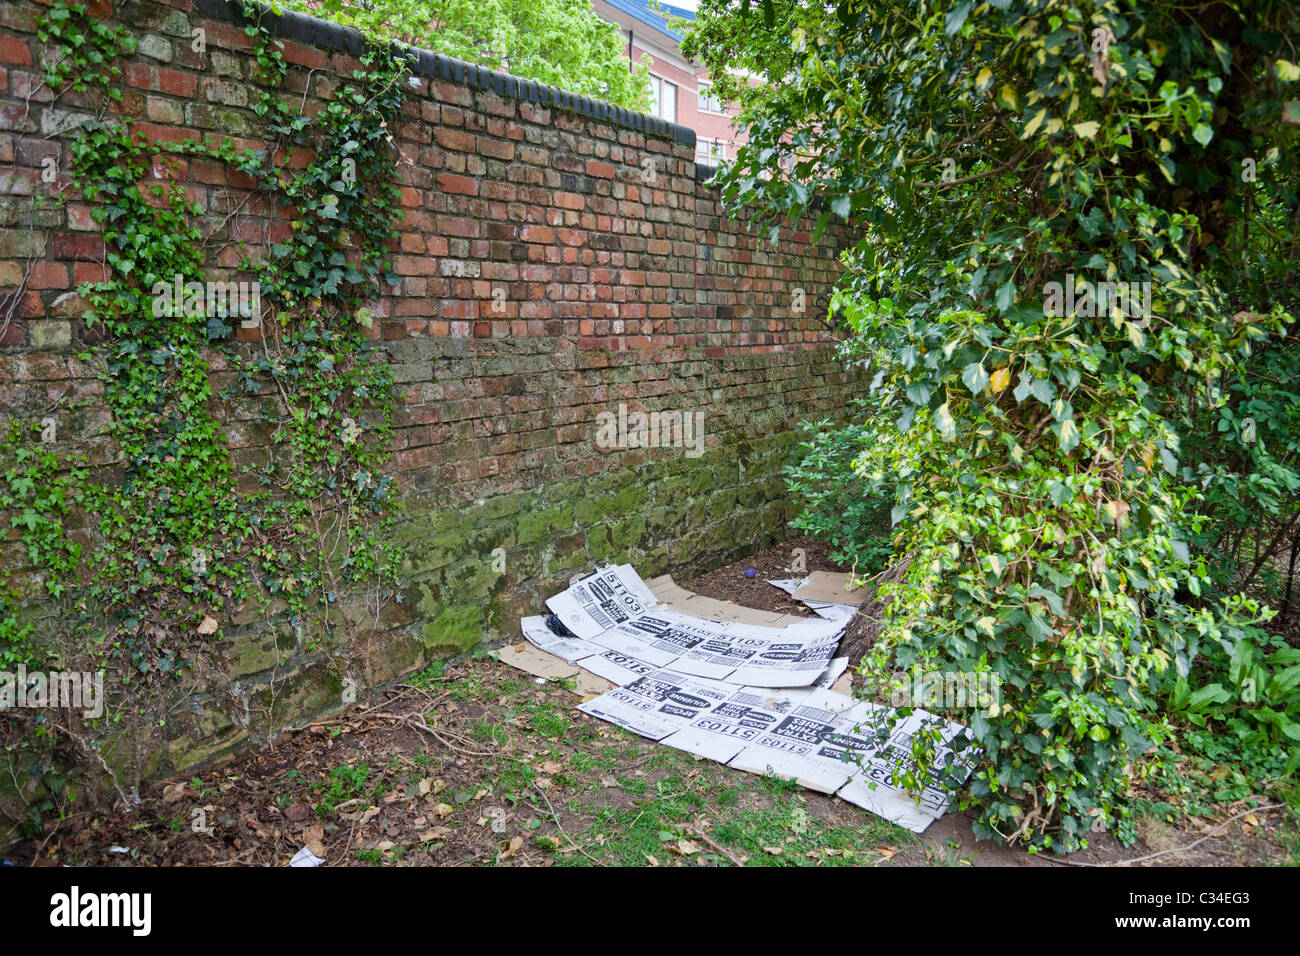 Homelessness UK: cardboard bed used by the homeless, hidden in bushes in Nottingham, England, UK - Stock Image